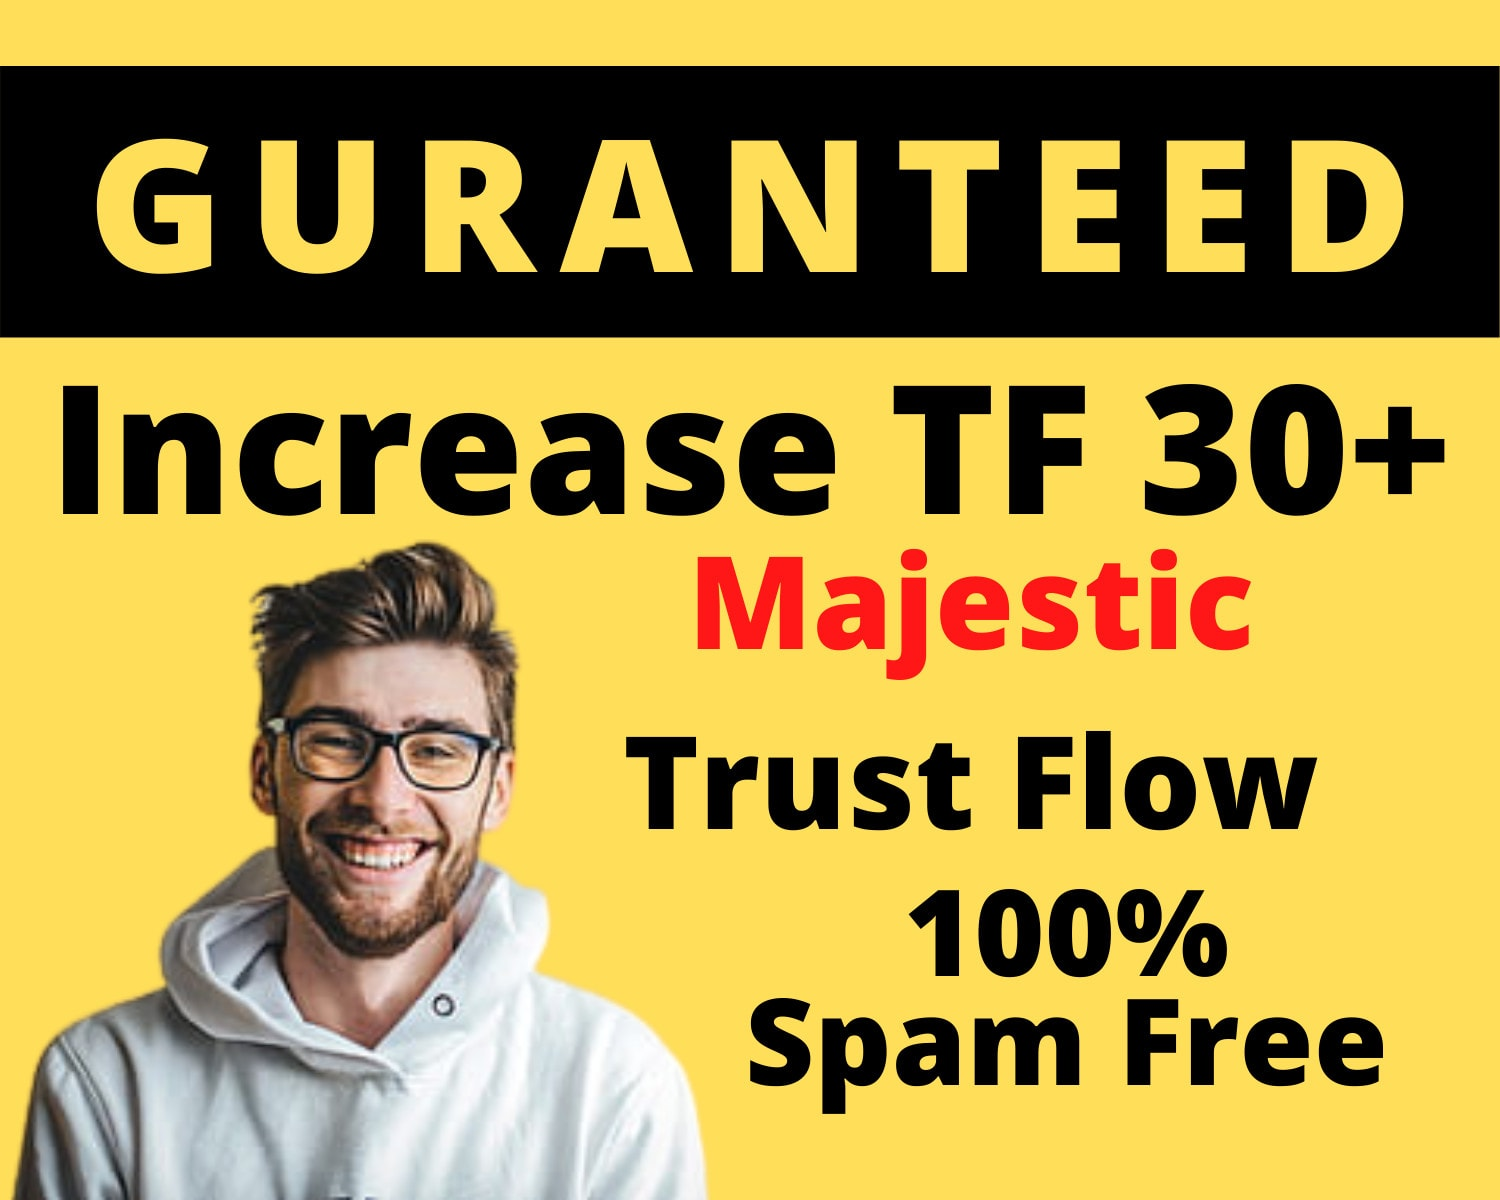 I'll increase majestic TF CF 30+ guaranteed